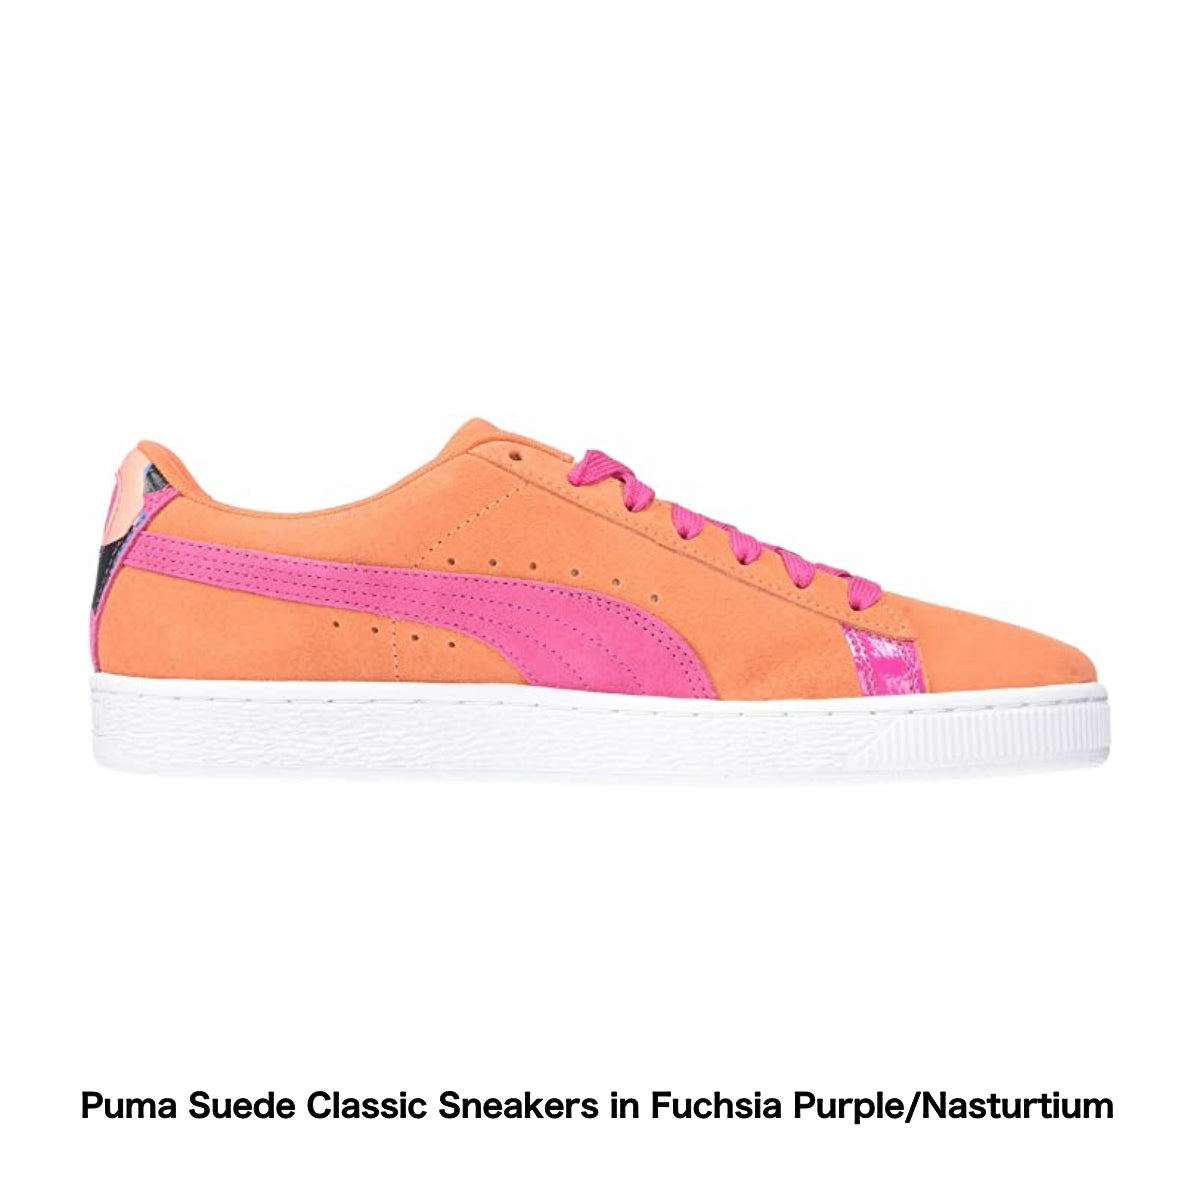 Puma Suede Classic Sneakers in Fuchsia Purple/Nasturtium - Amazon